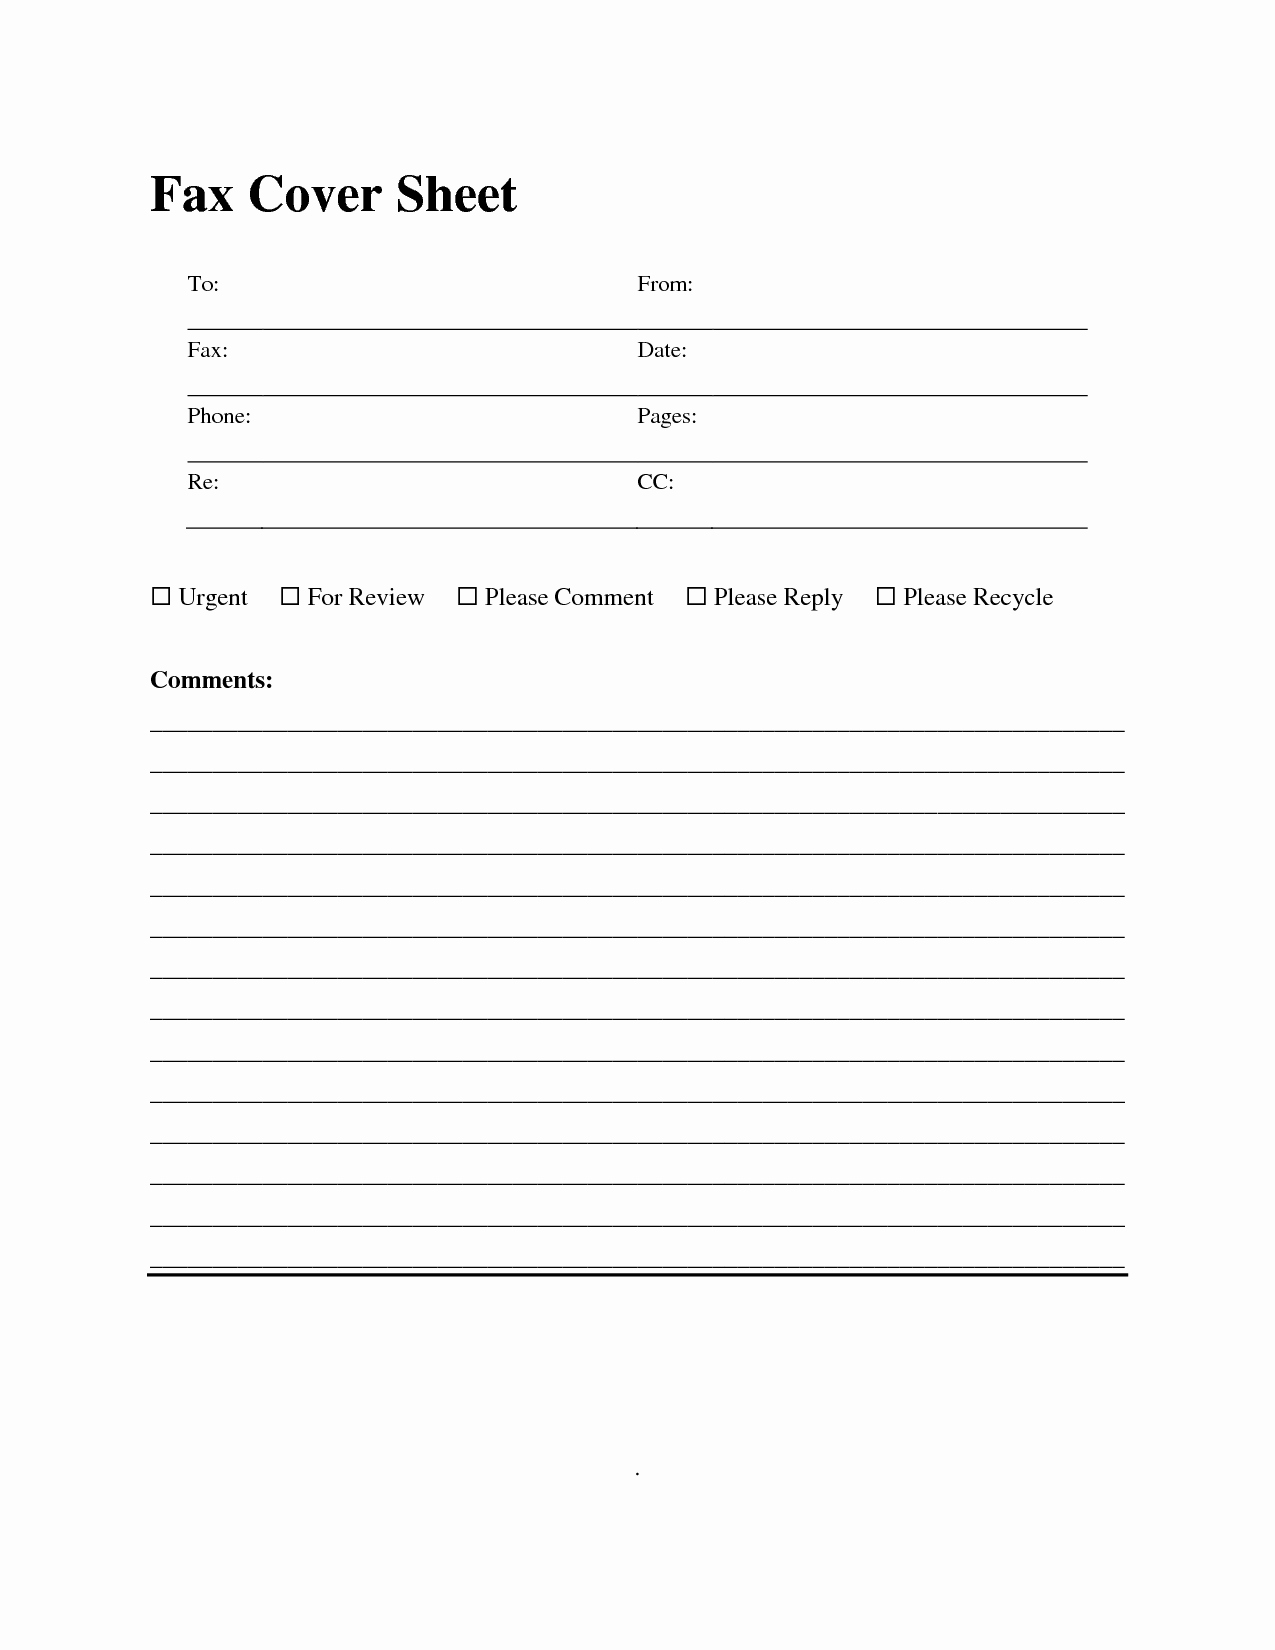 Free Fax Cover Sheet Templates New 10 Best Of Fax Cover Page Template Fax Cover